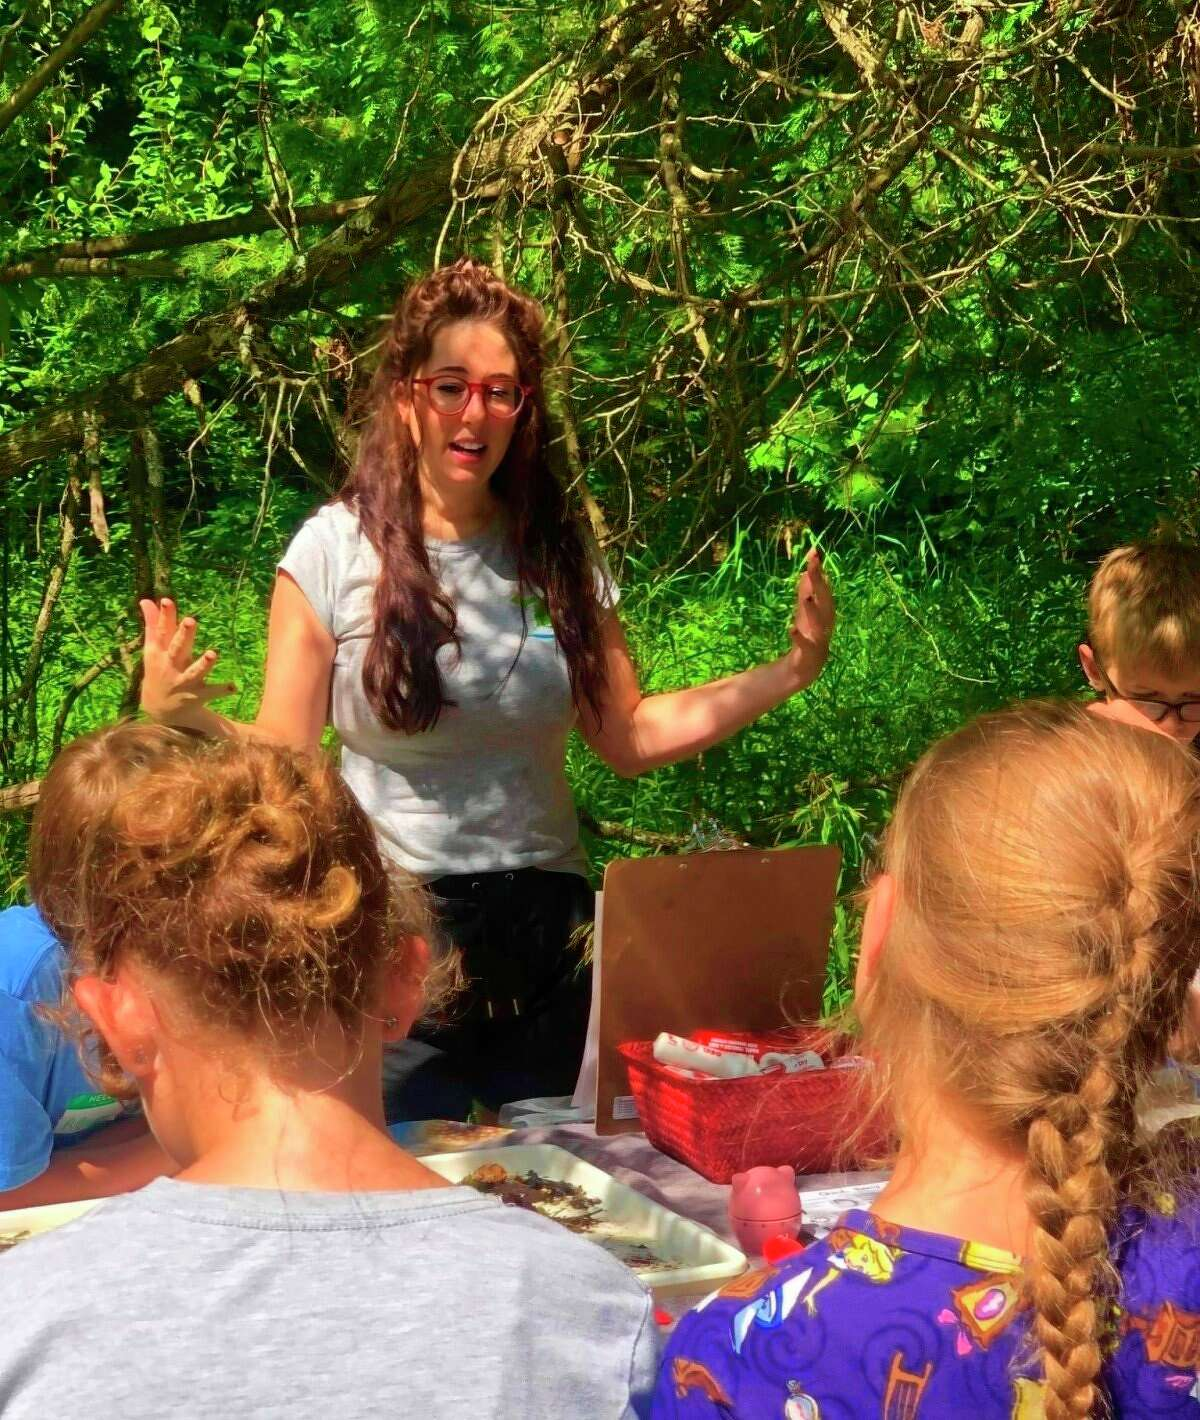 ChelseaCooper,Manistee Conservation District conservation technician and aquatic invasive species outreach coordinator, teaches kids aboutaquatic macroinvertebrates and invasive species at theSpirit of the Woods Conservation Club's free youth camp on Tuesday. (Courtesy photo)